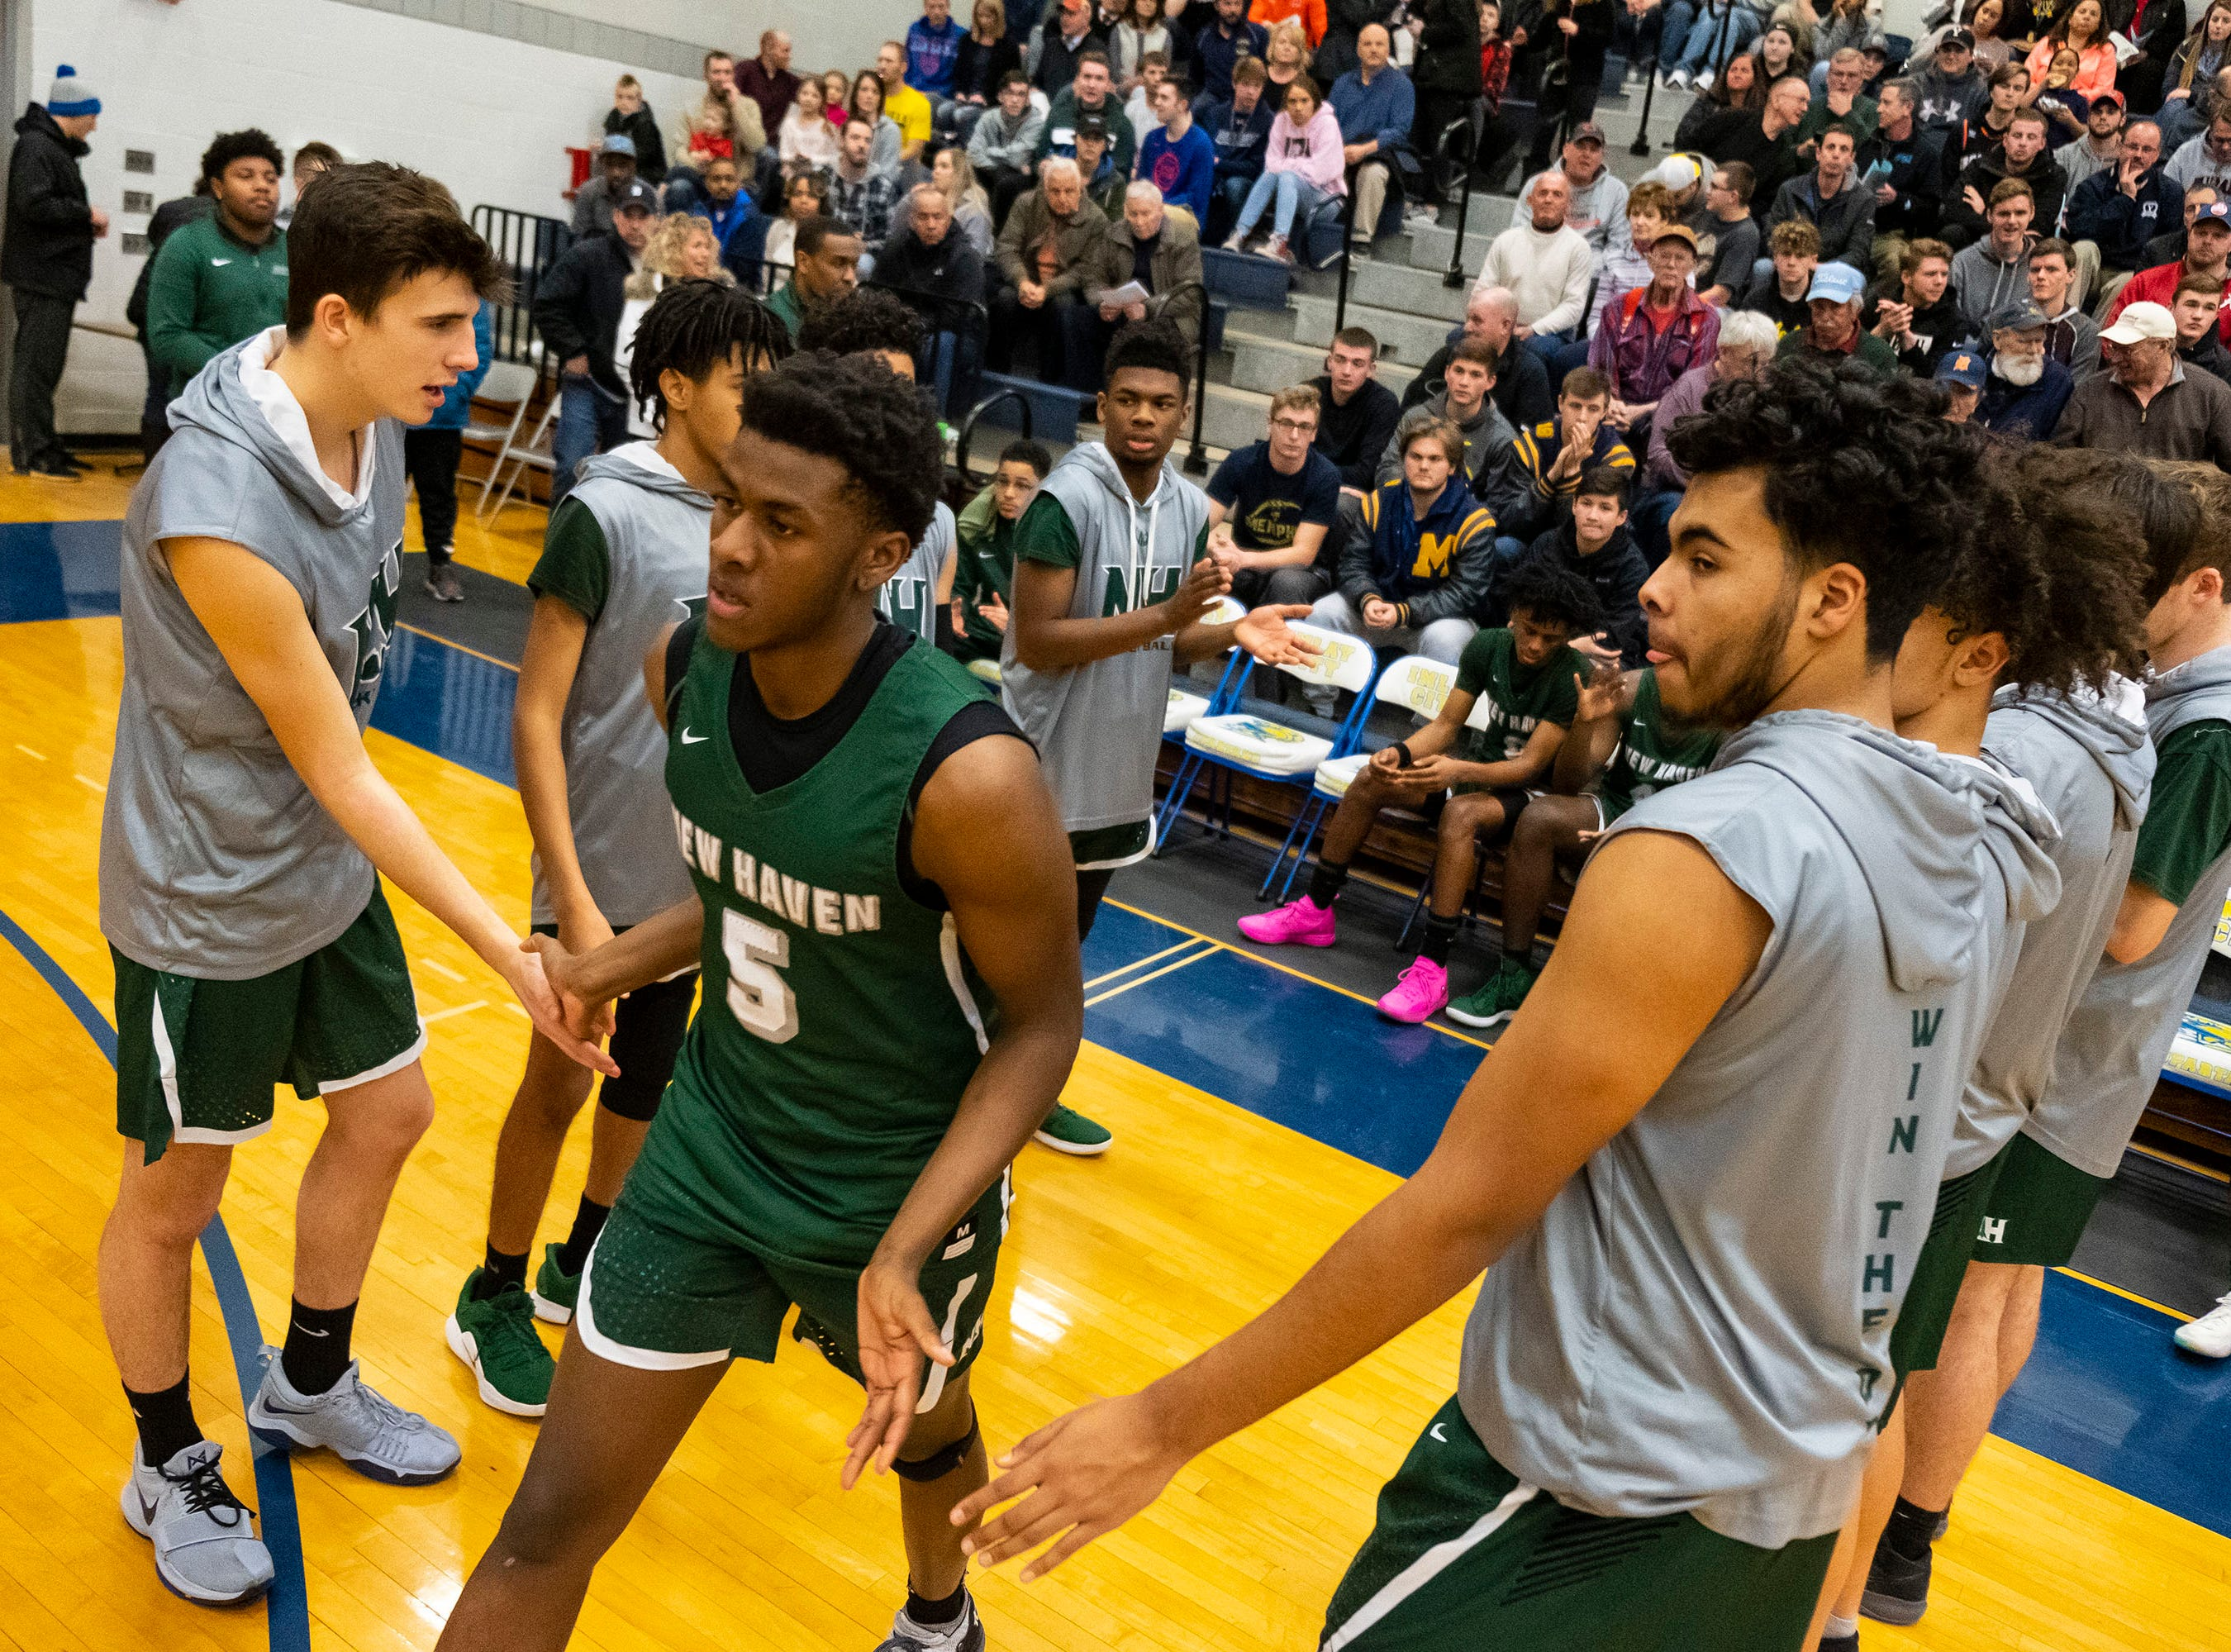 New Haven's Trenell Payne (5) high-fives his teammates at the start of  the MHSAA District 2 basketball regionals against Goodrich High School  Tuesday, March 5, 2019 at Imlay City High School.